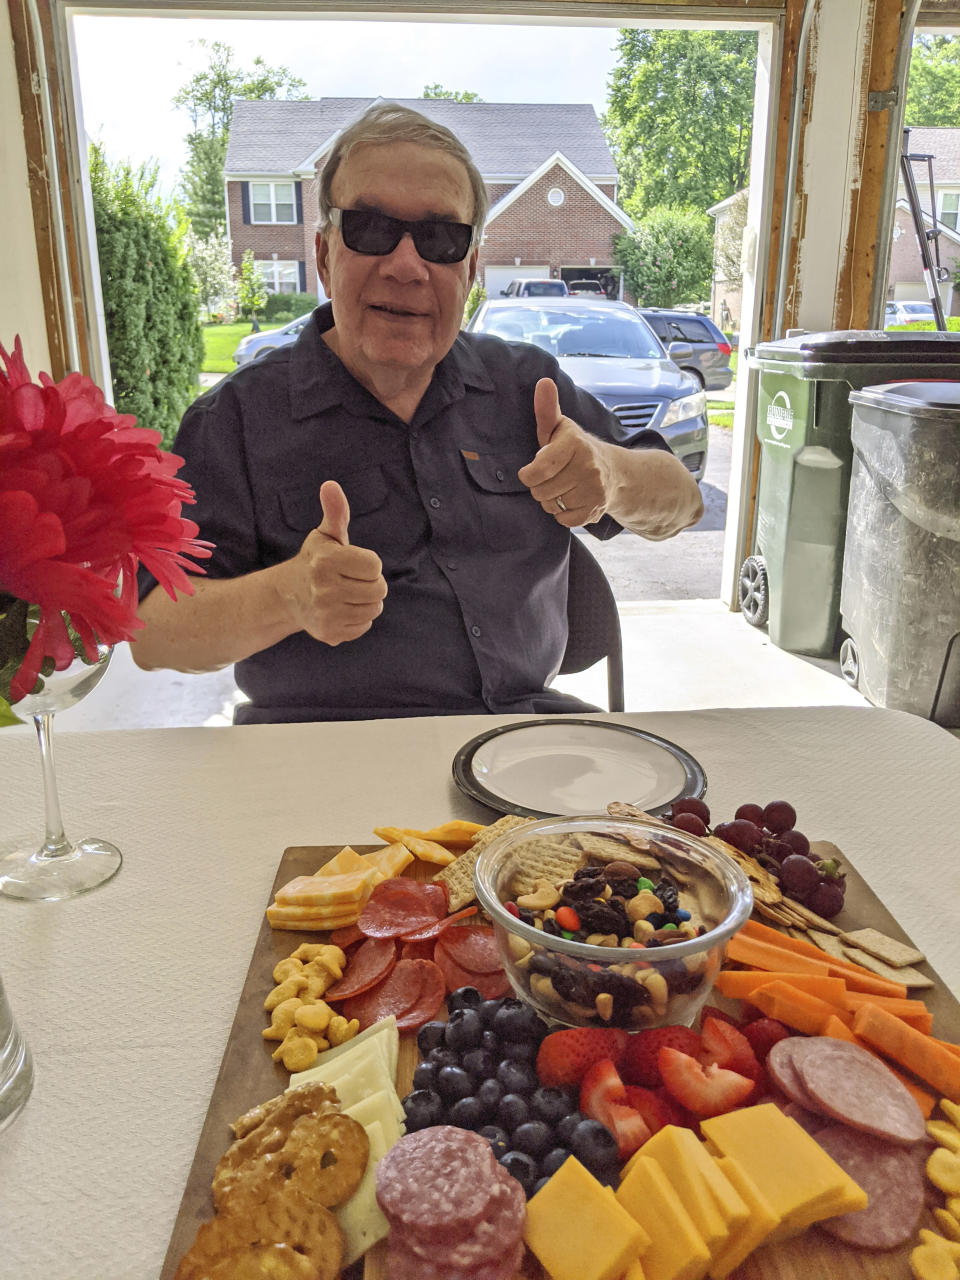 """In this photo provided by courtesy of Nancy Peters, Joe Peters gives a thumbs up before enjoying a charcuterie board at a birthday dinner at one of his children's home, Aug. 1, 2020, in Cincinnati. Joe and Nancy Peters had one of their 11 grandchildren over to visit last week as they began """"cautiously returning to normal,"""" he says. The pandemic and its isolating restrictions have been especially tough for many of the nation's some 70 million grandparents, many at ages when they are considered most vulnerable to the deadly COVID-19 virus. (Nancy Peters via AP)"""